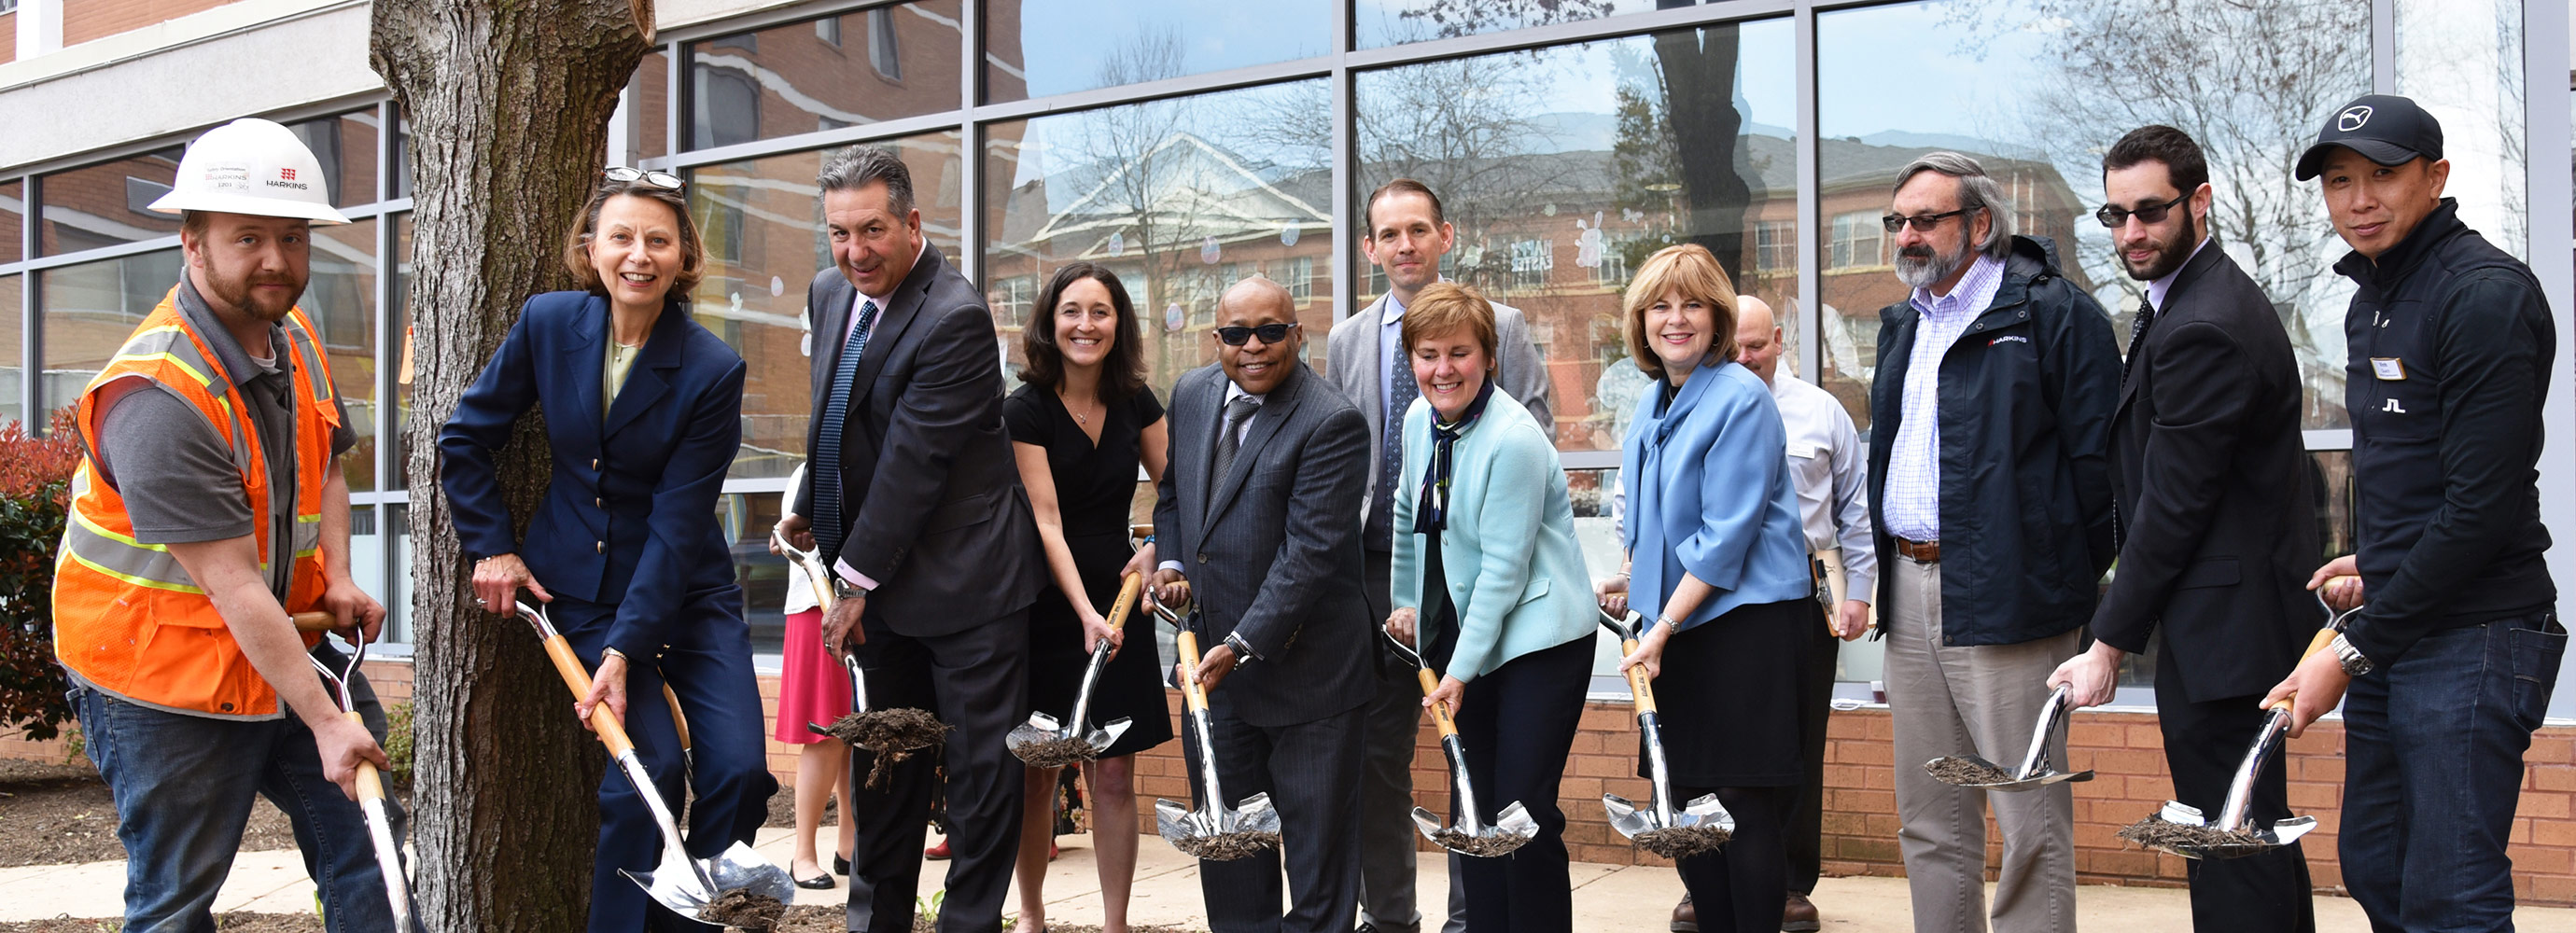 Harkins and team celebratory ground breaking at the Culpepper project